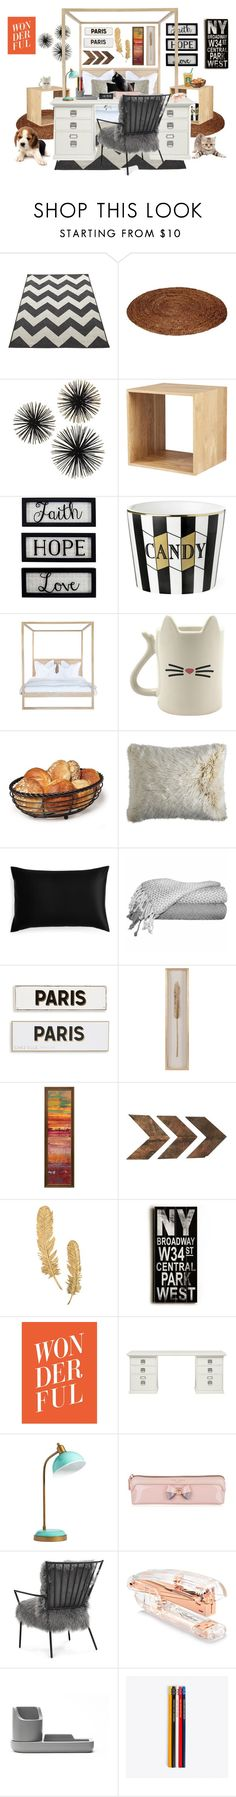 """Dream Room"" by tumblr-outfits12 on Polyvore featuring interior, interiors, interior design, home, home decor, interior decorating, New View, Pier 1 Imports, Slip and Rosanna"